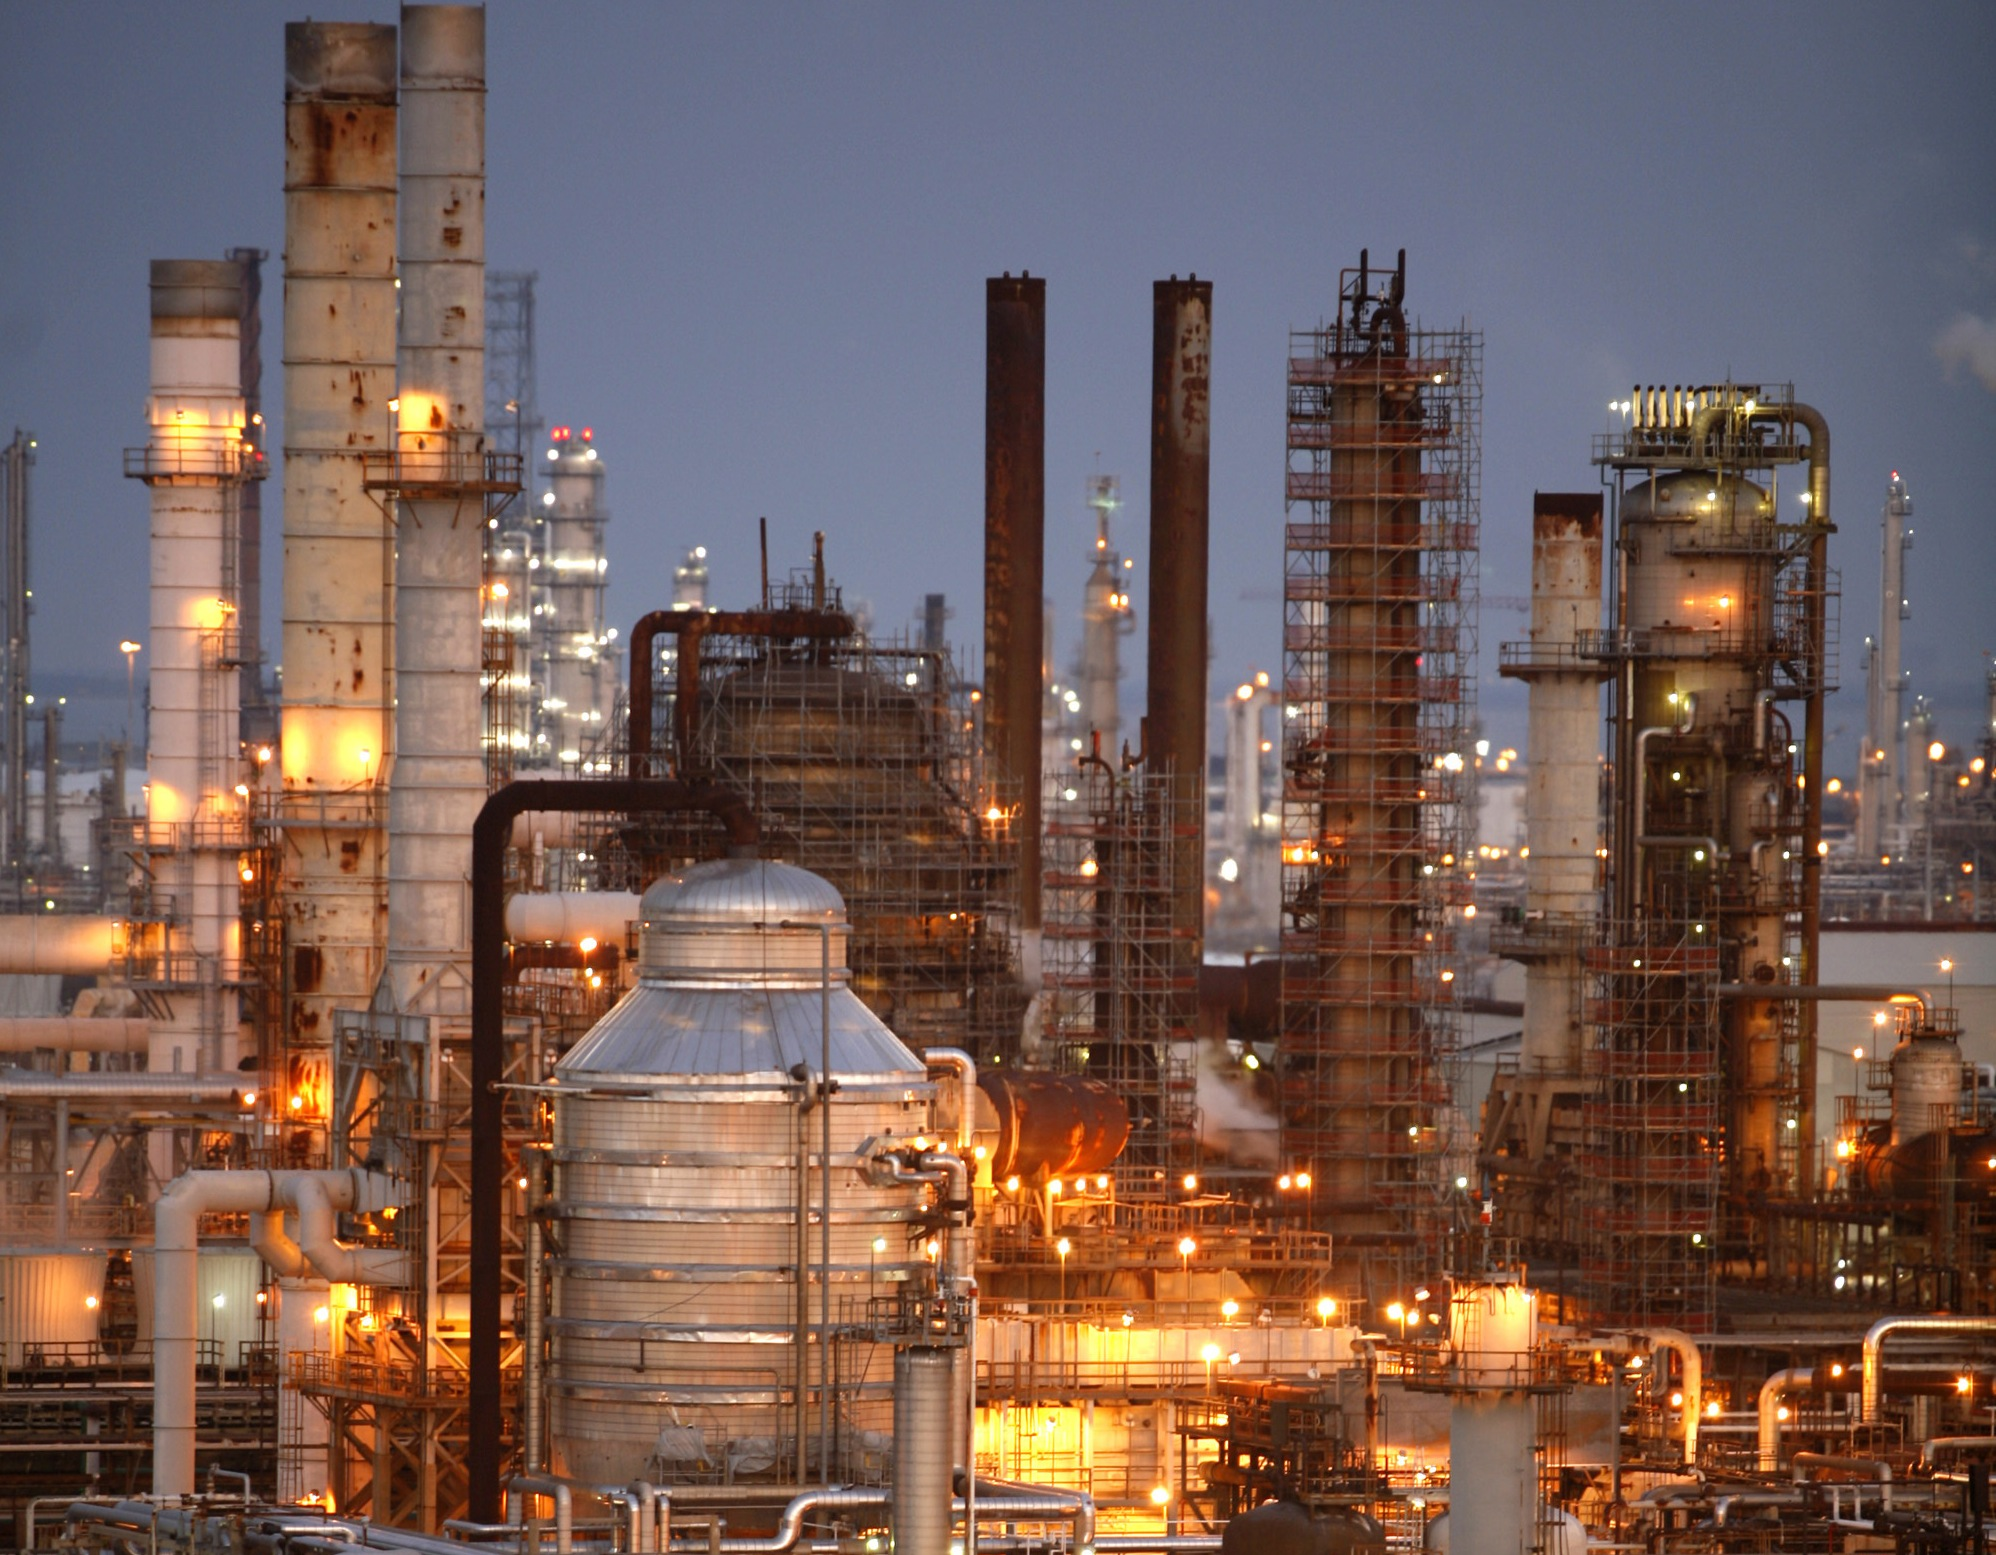 Operating procedure key to process safety | Process Engineering